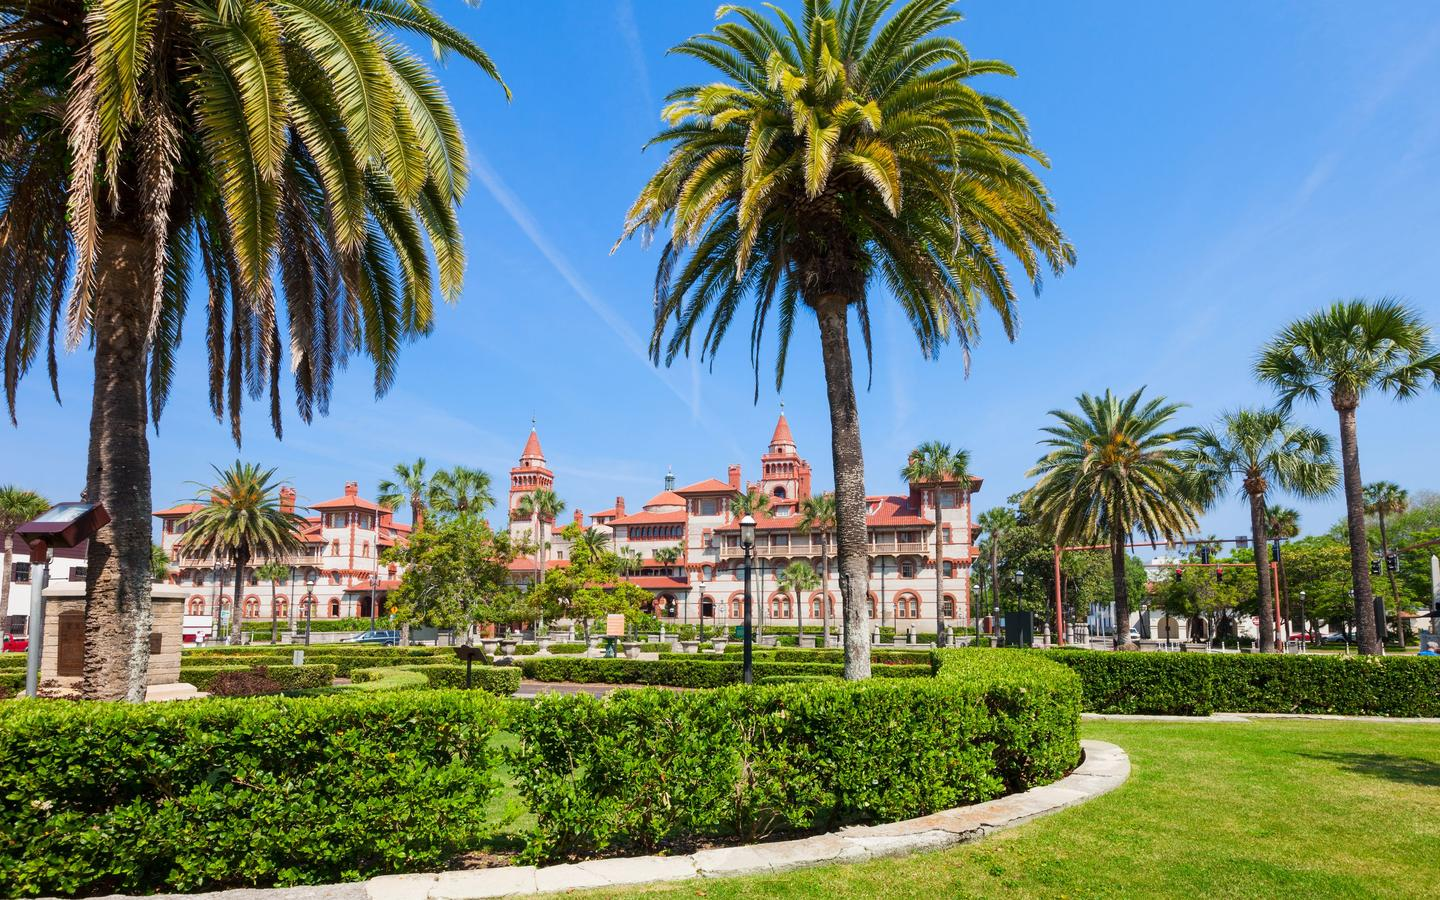 St. Augustine hoteles